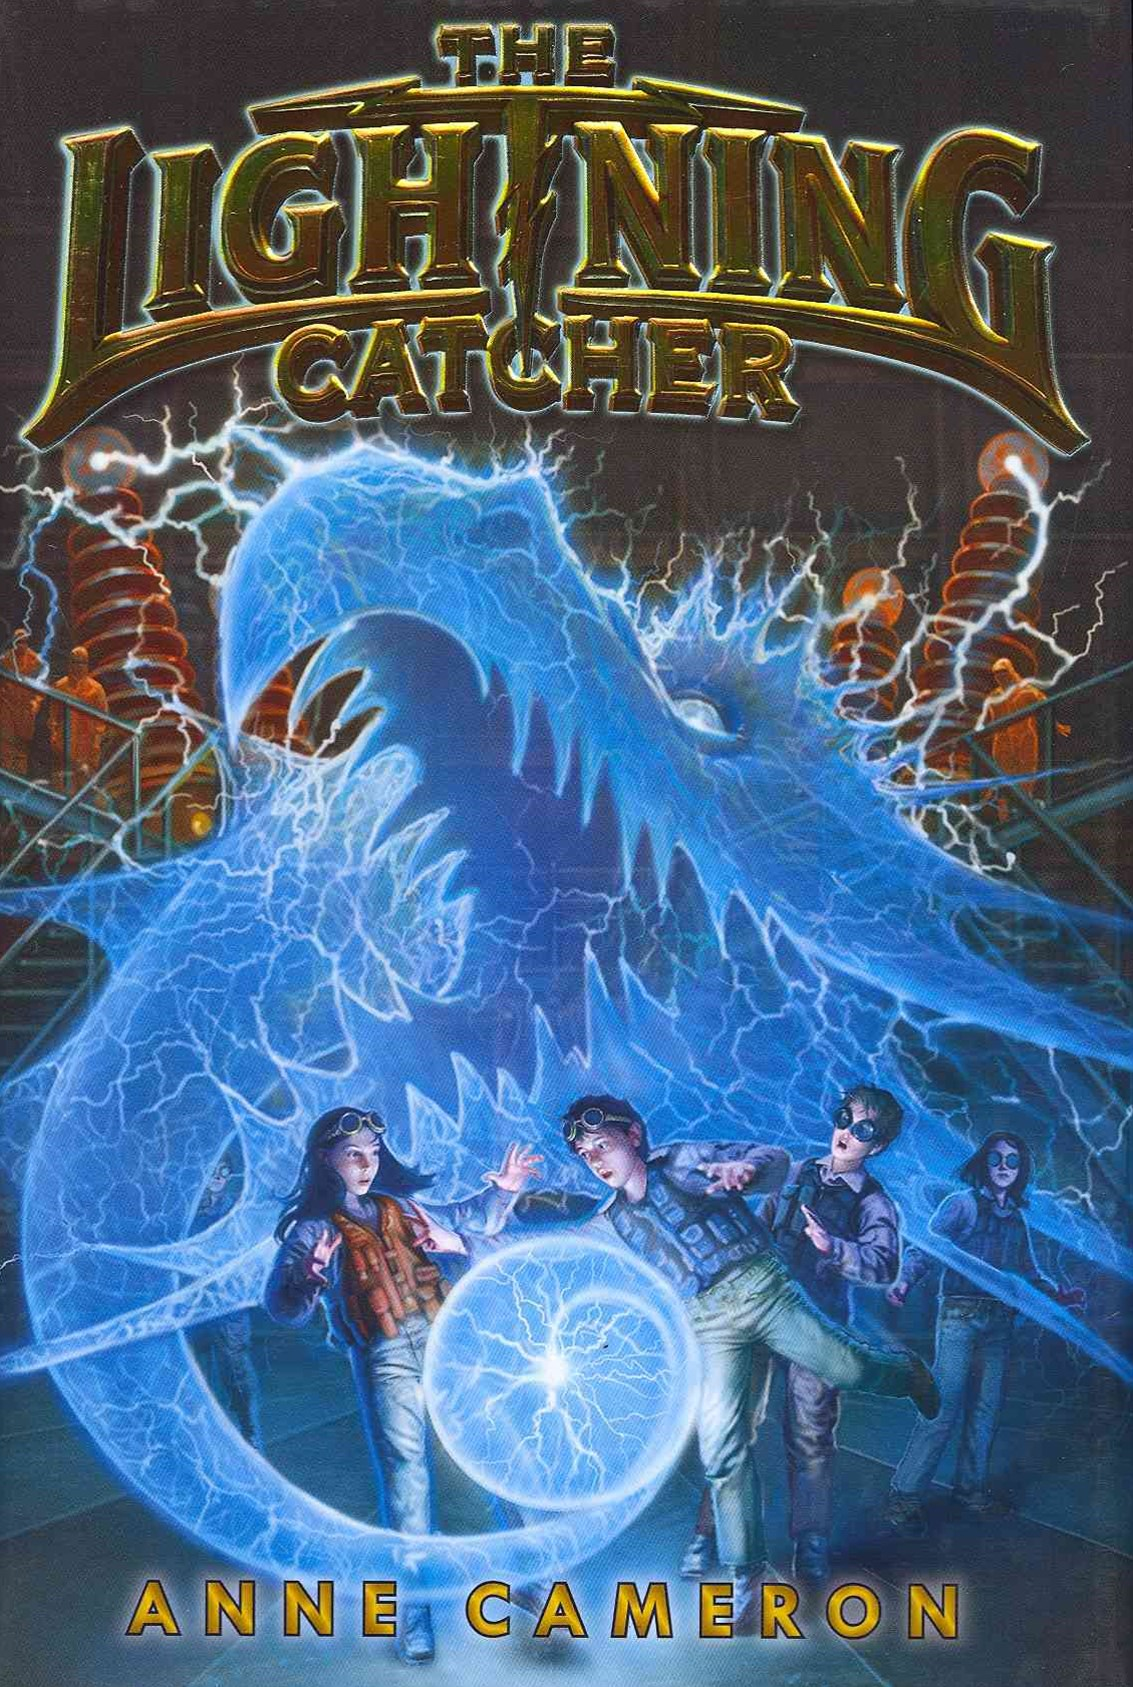 The Lightning Catcher